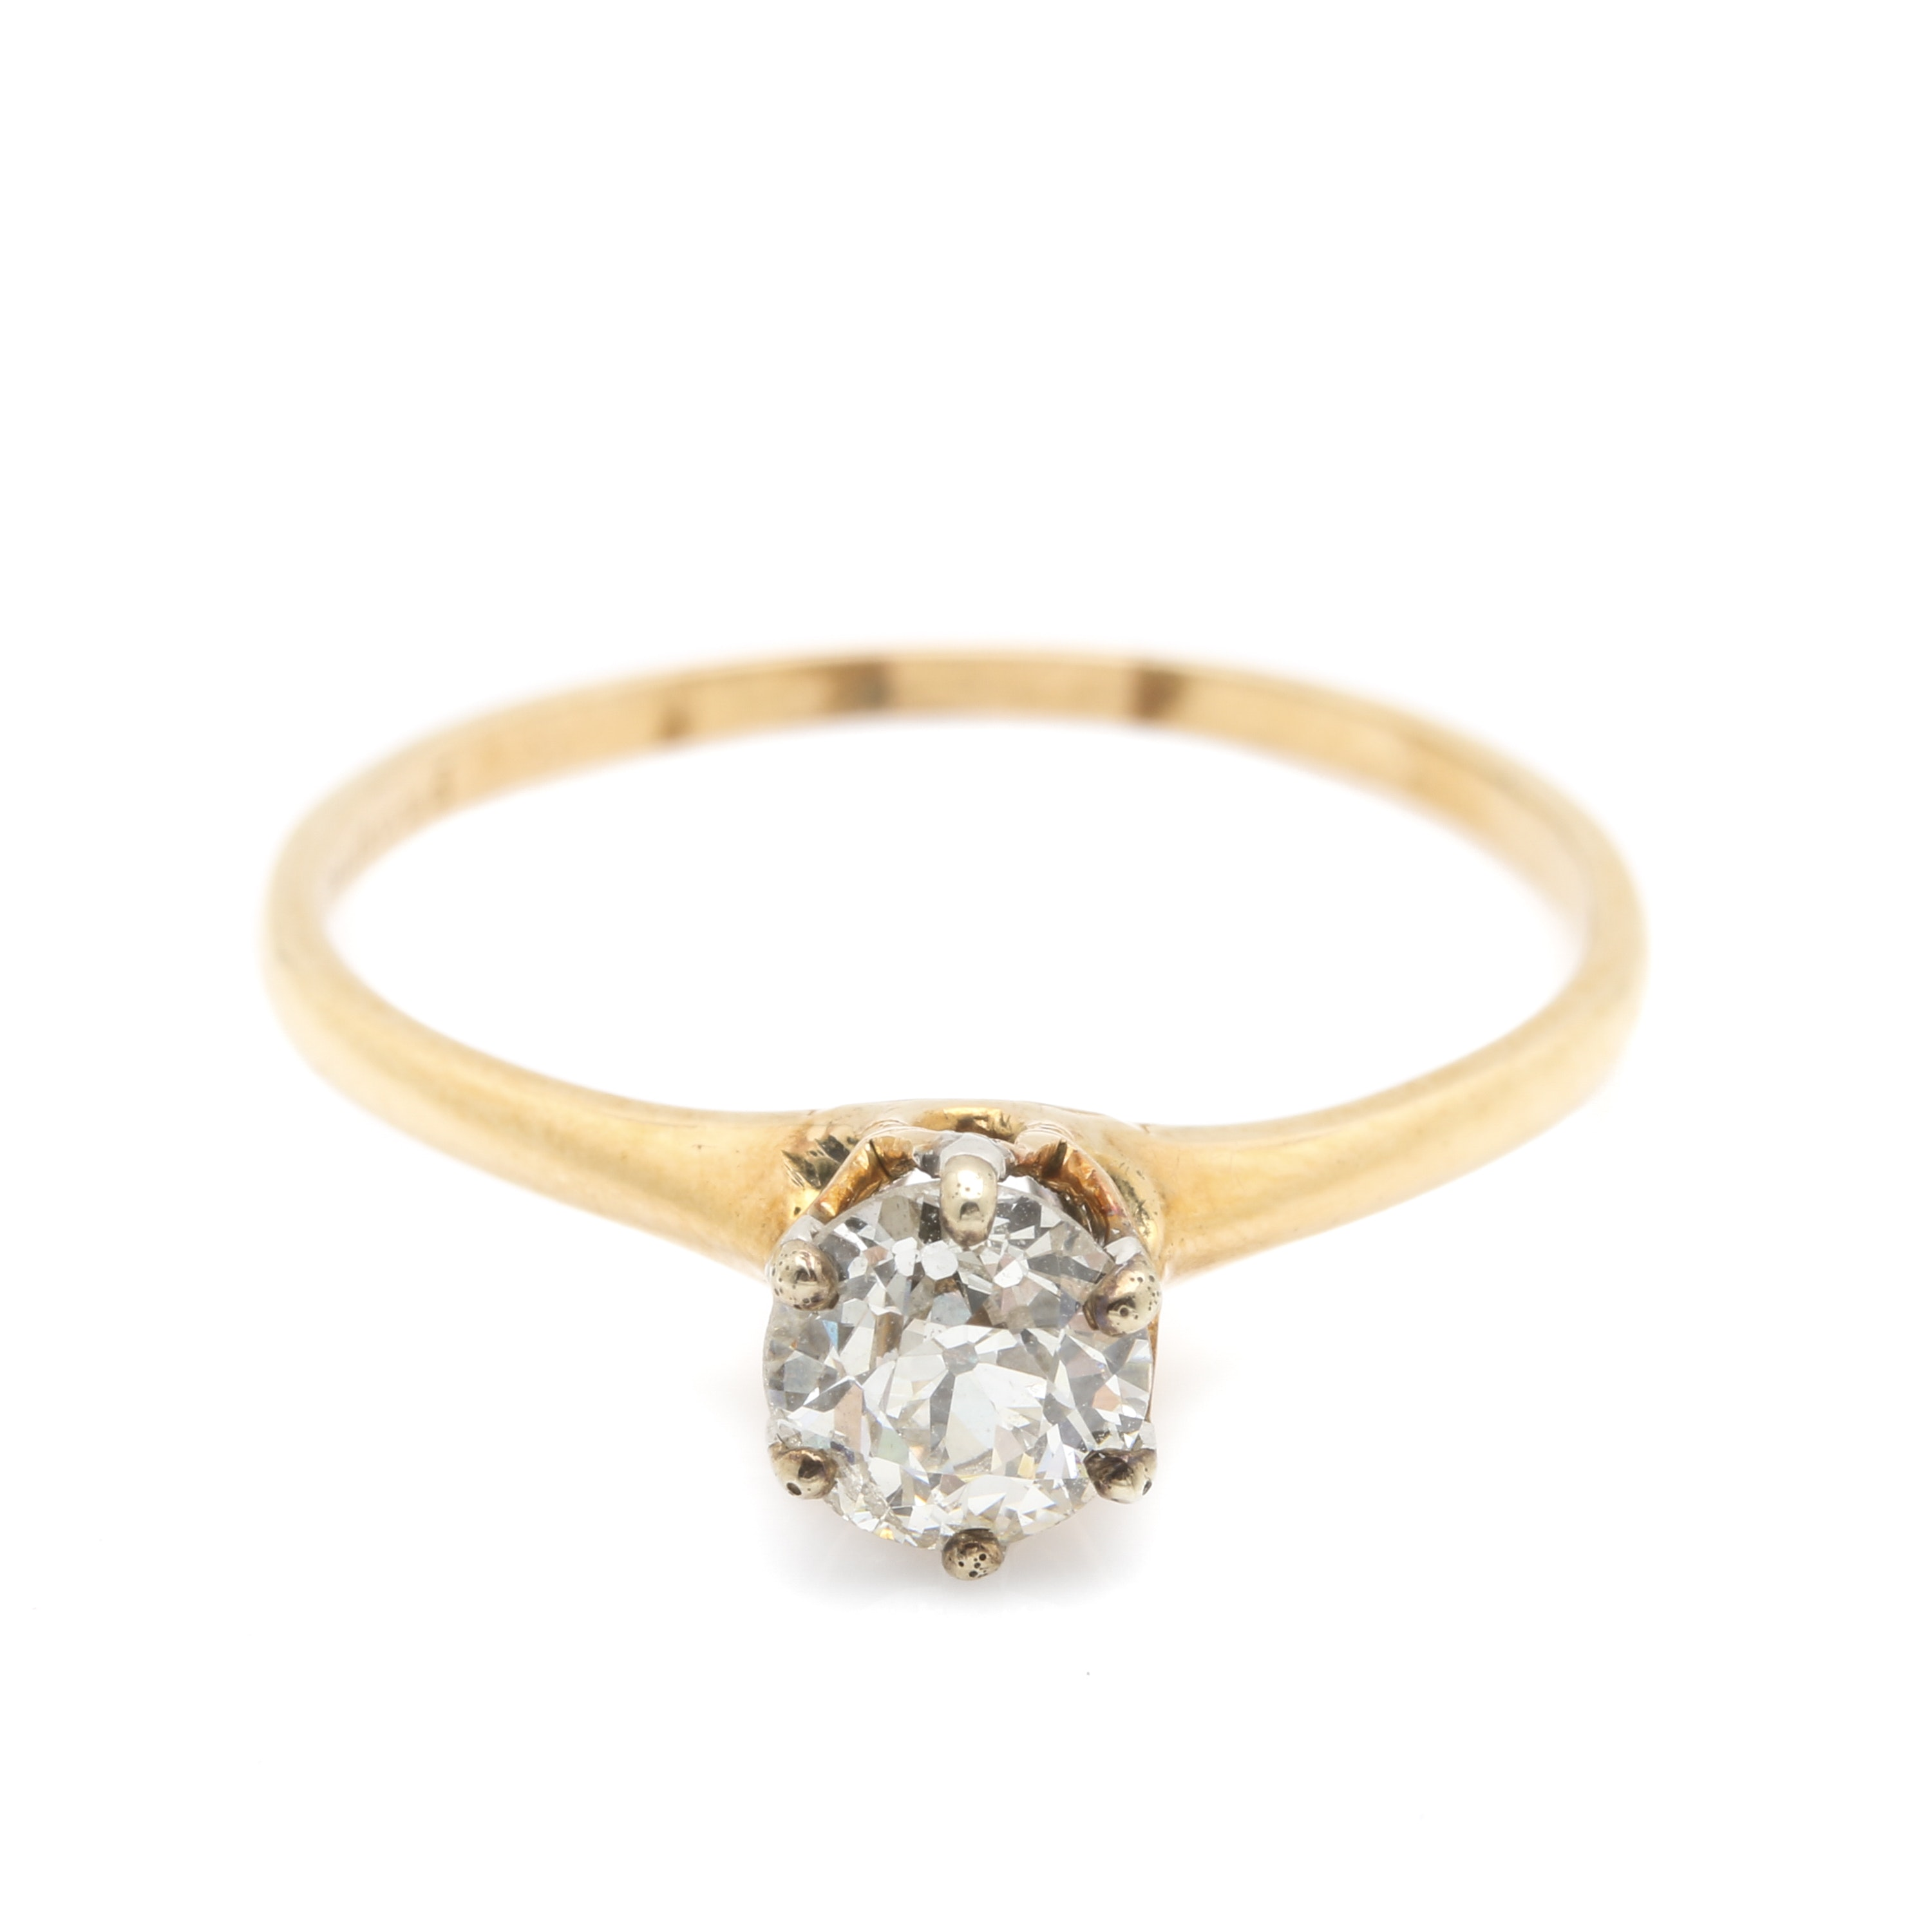 Platinum and 14K Yellow Gold Solitaire Diamond Ring